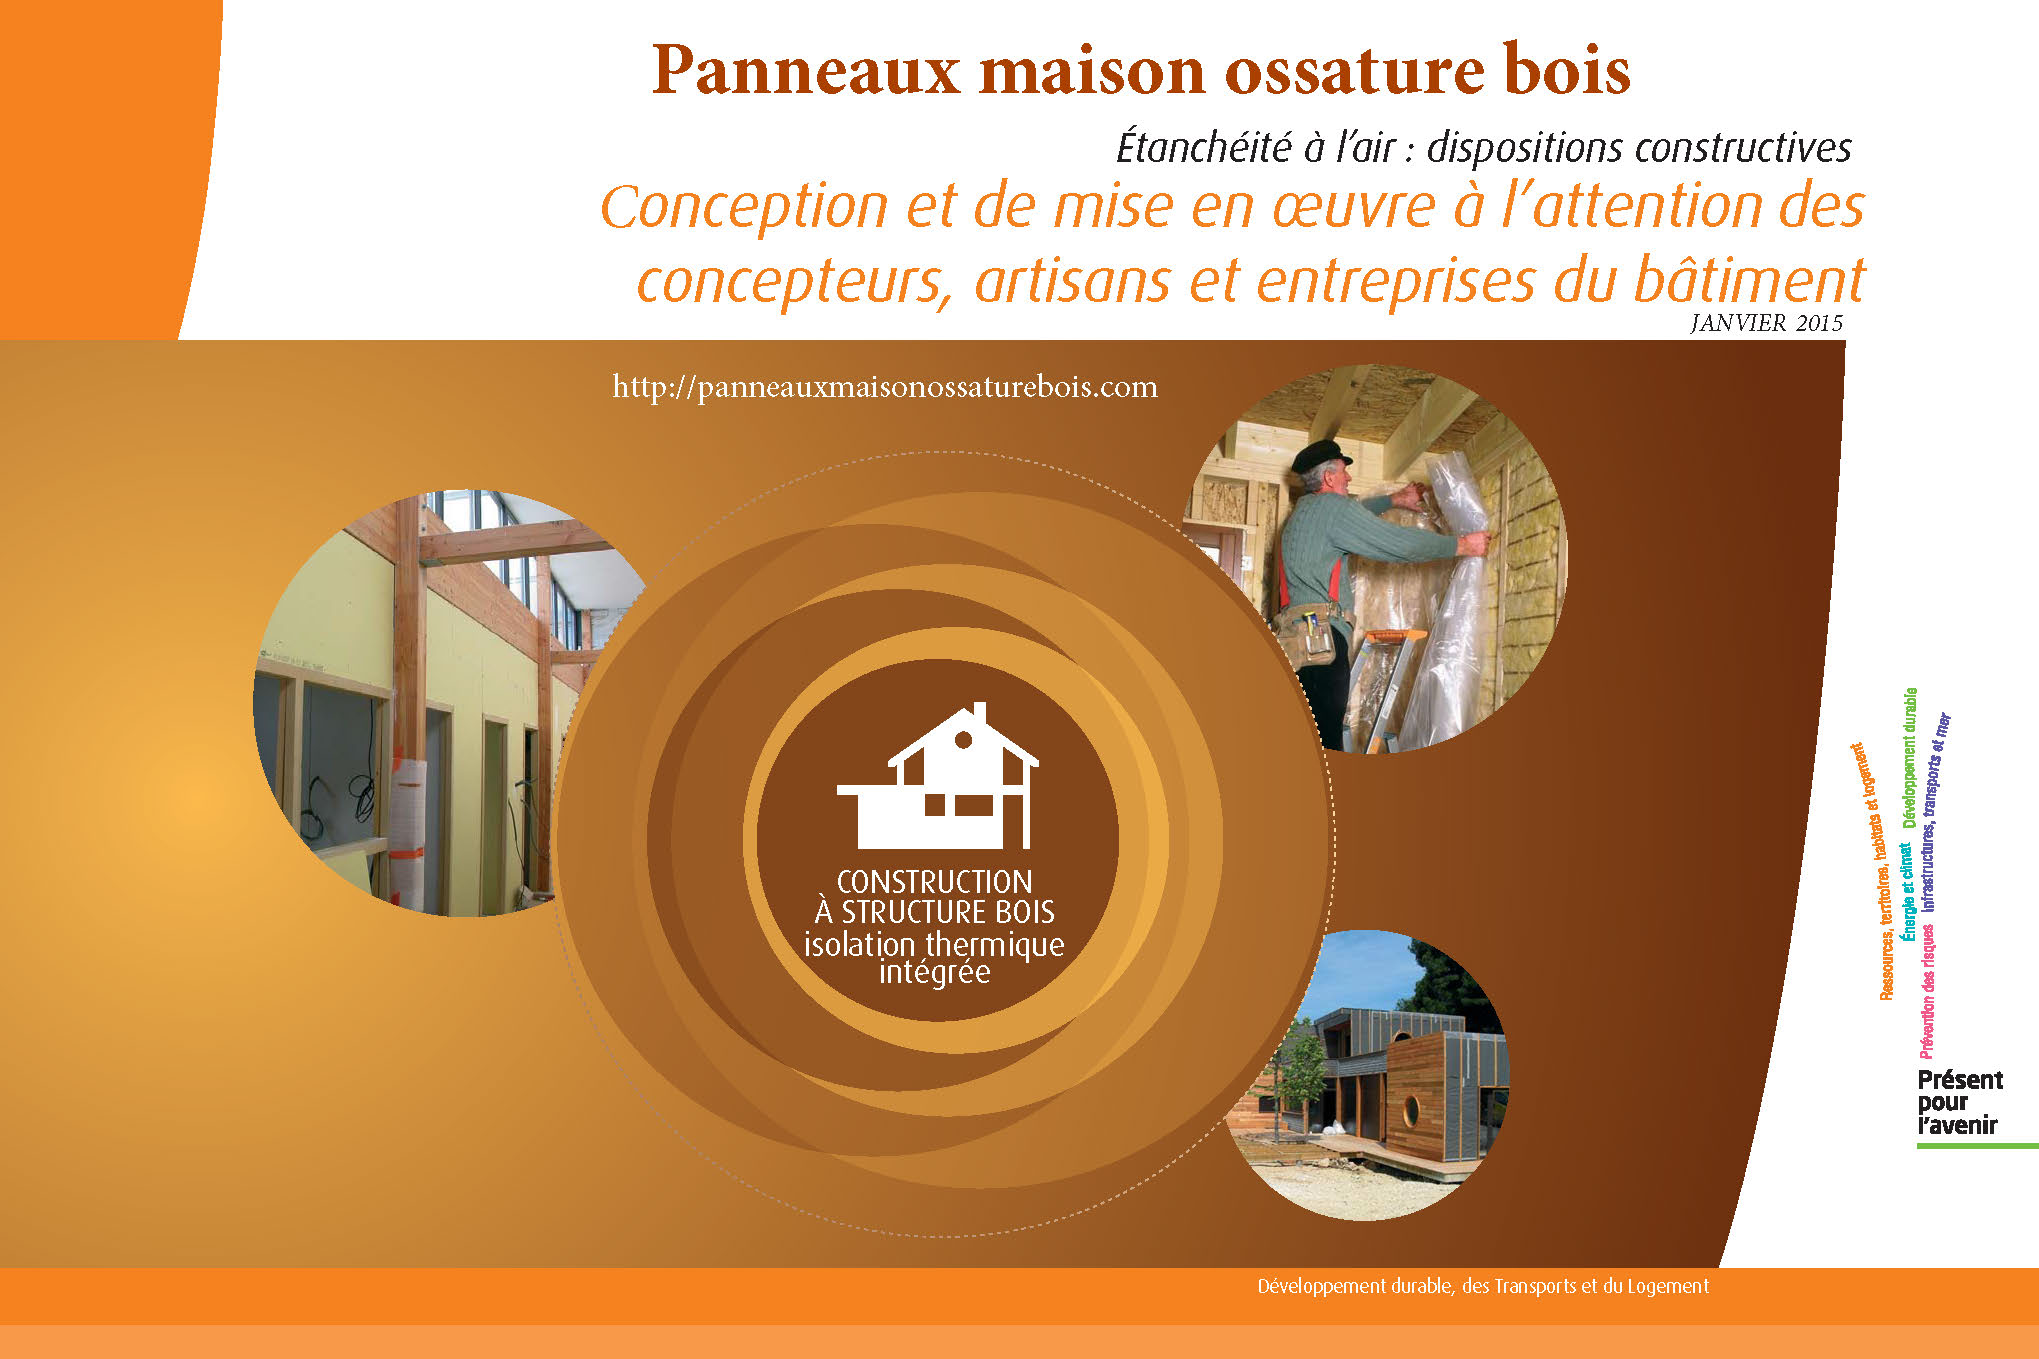 coupes construtions ossature bois complets_Page_01